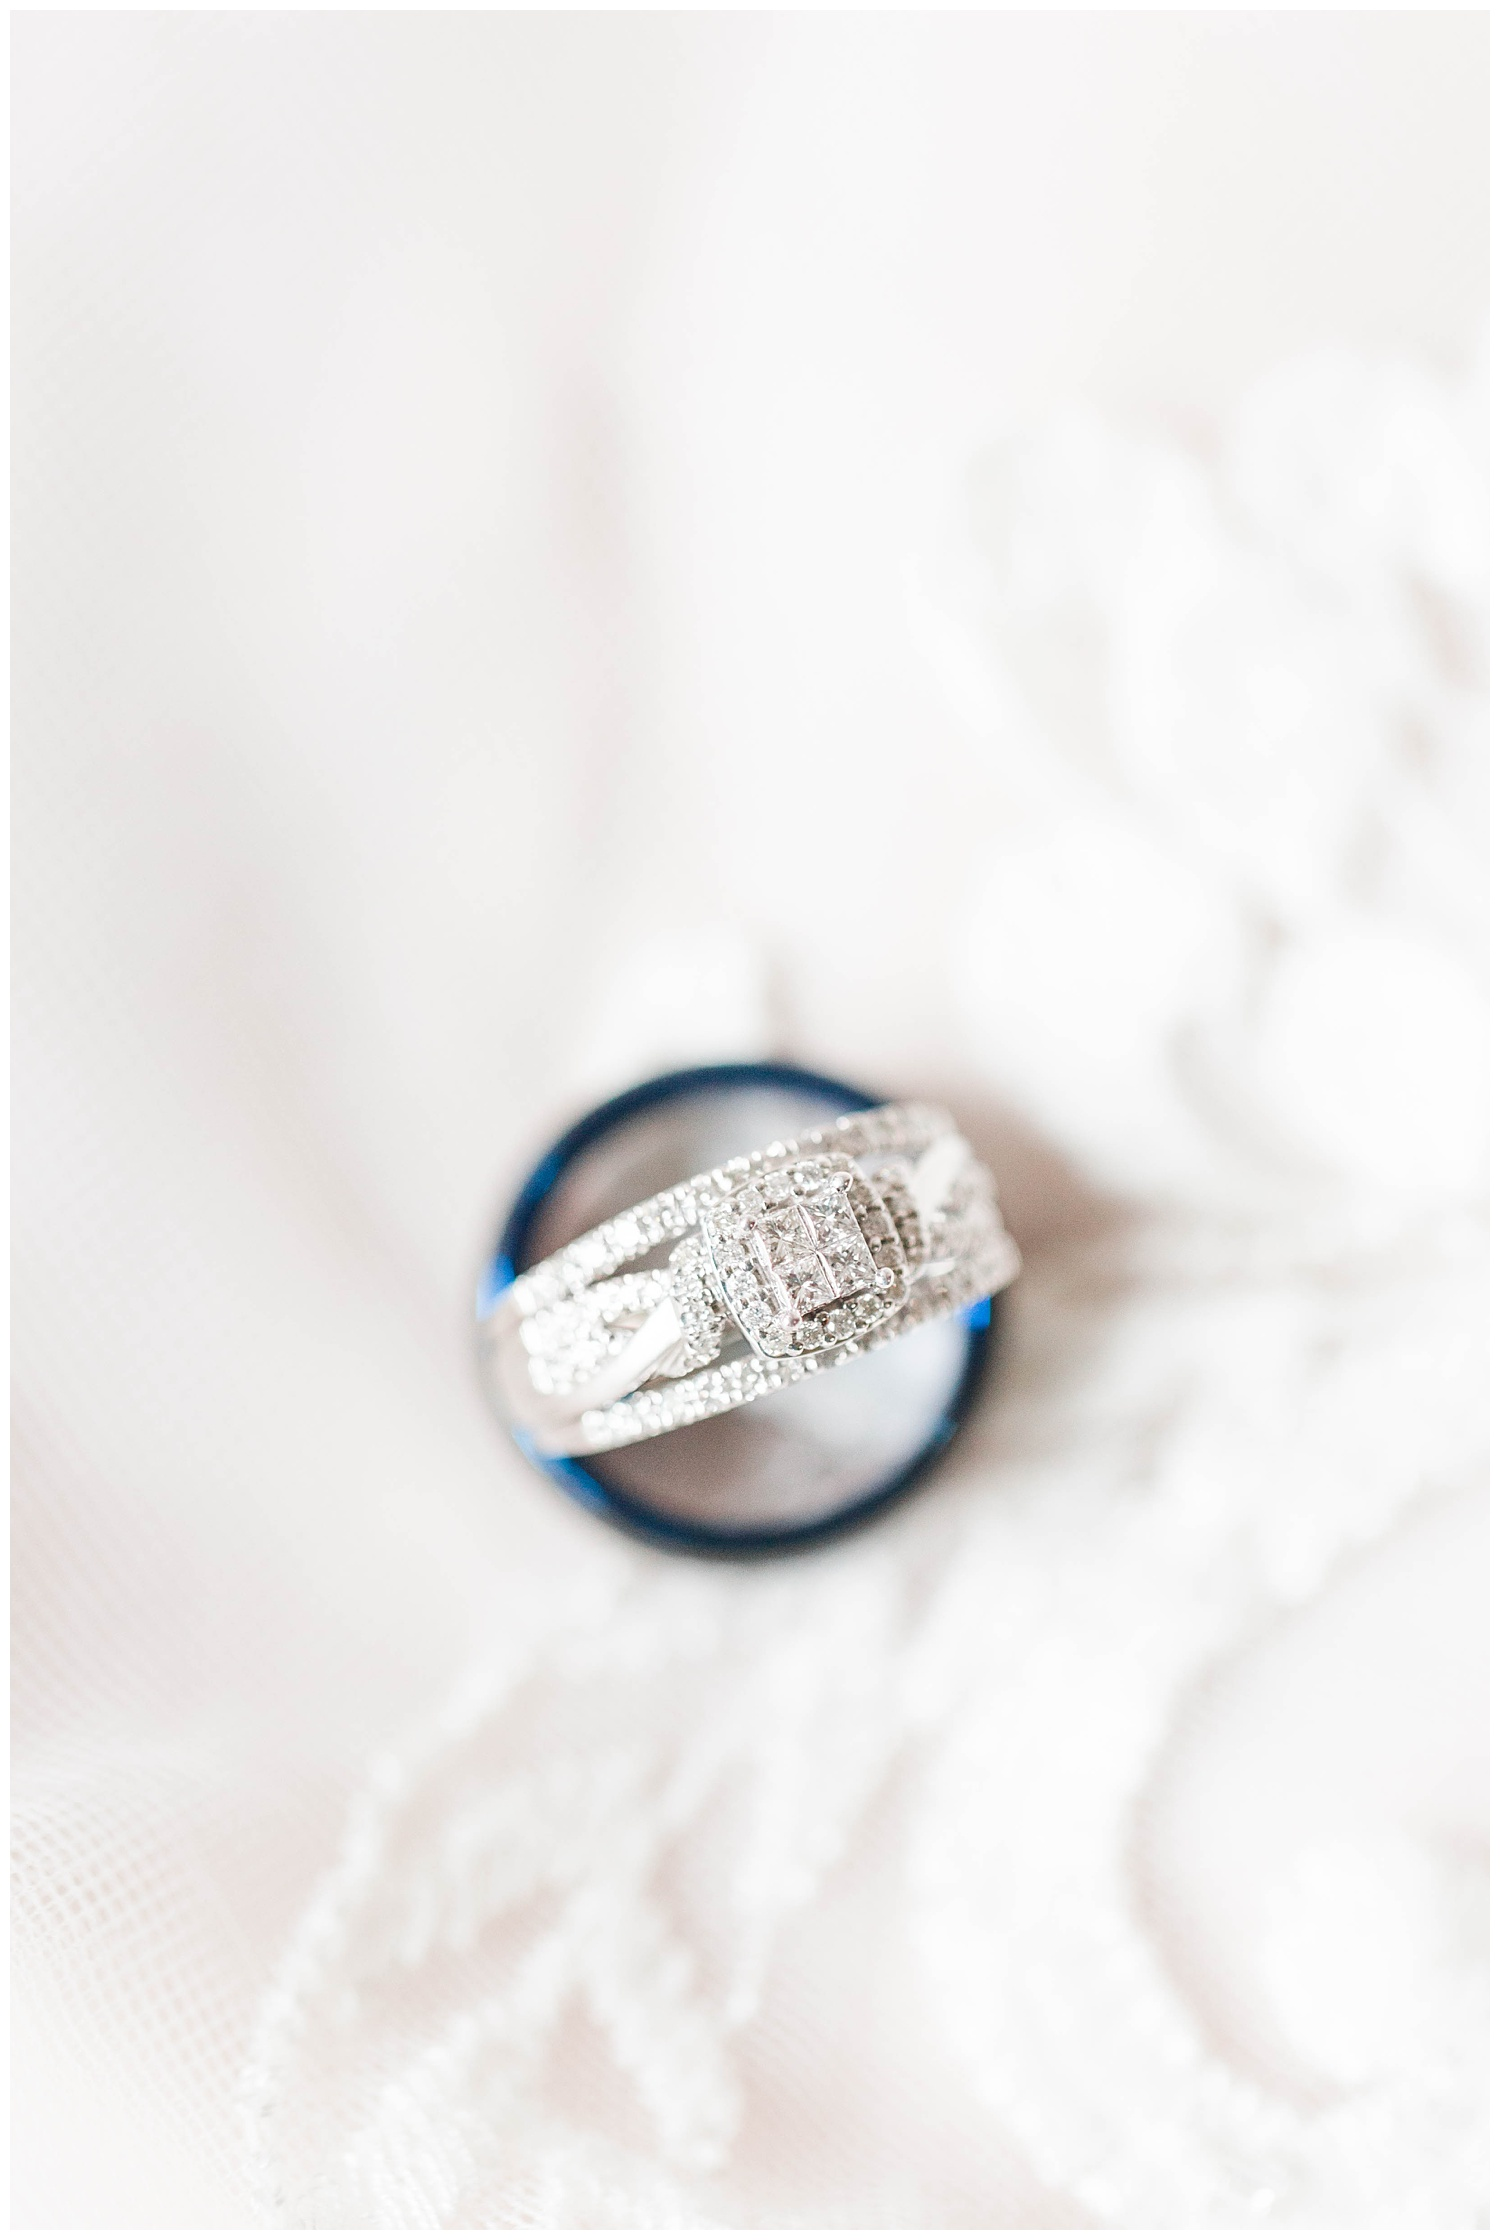 8 Tips for Assuring Perfect Bridal Detail Portraits on Your Wedding Day | CB Studio